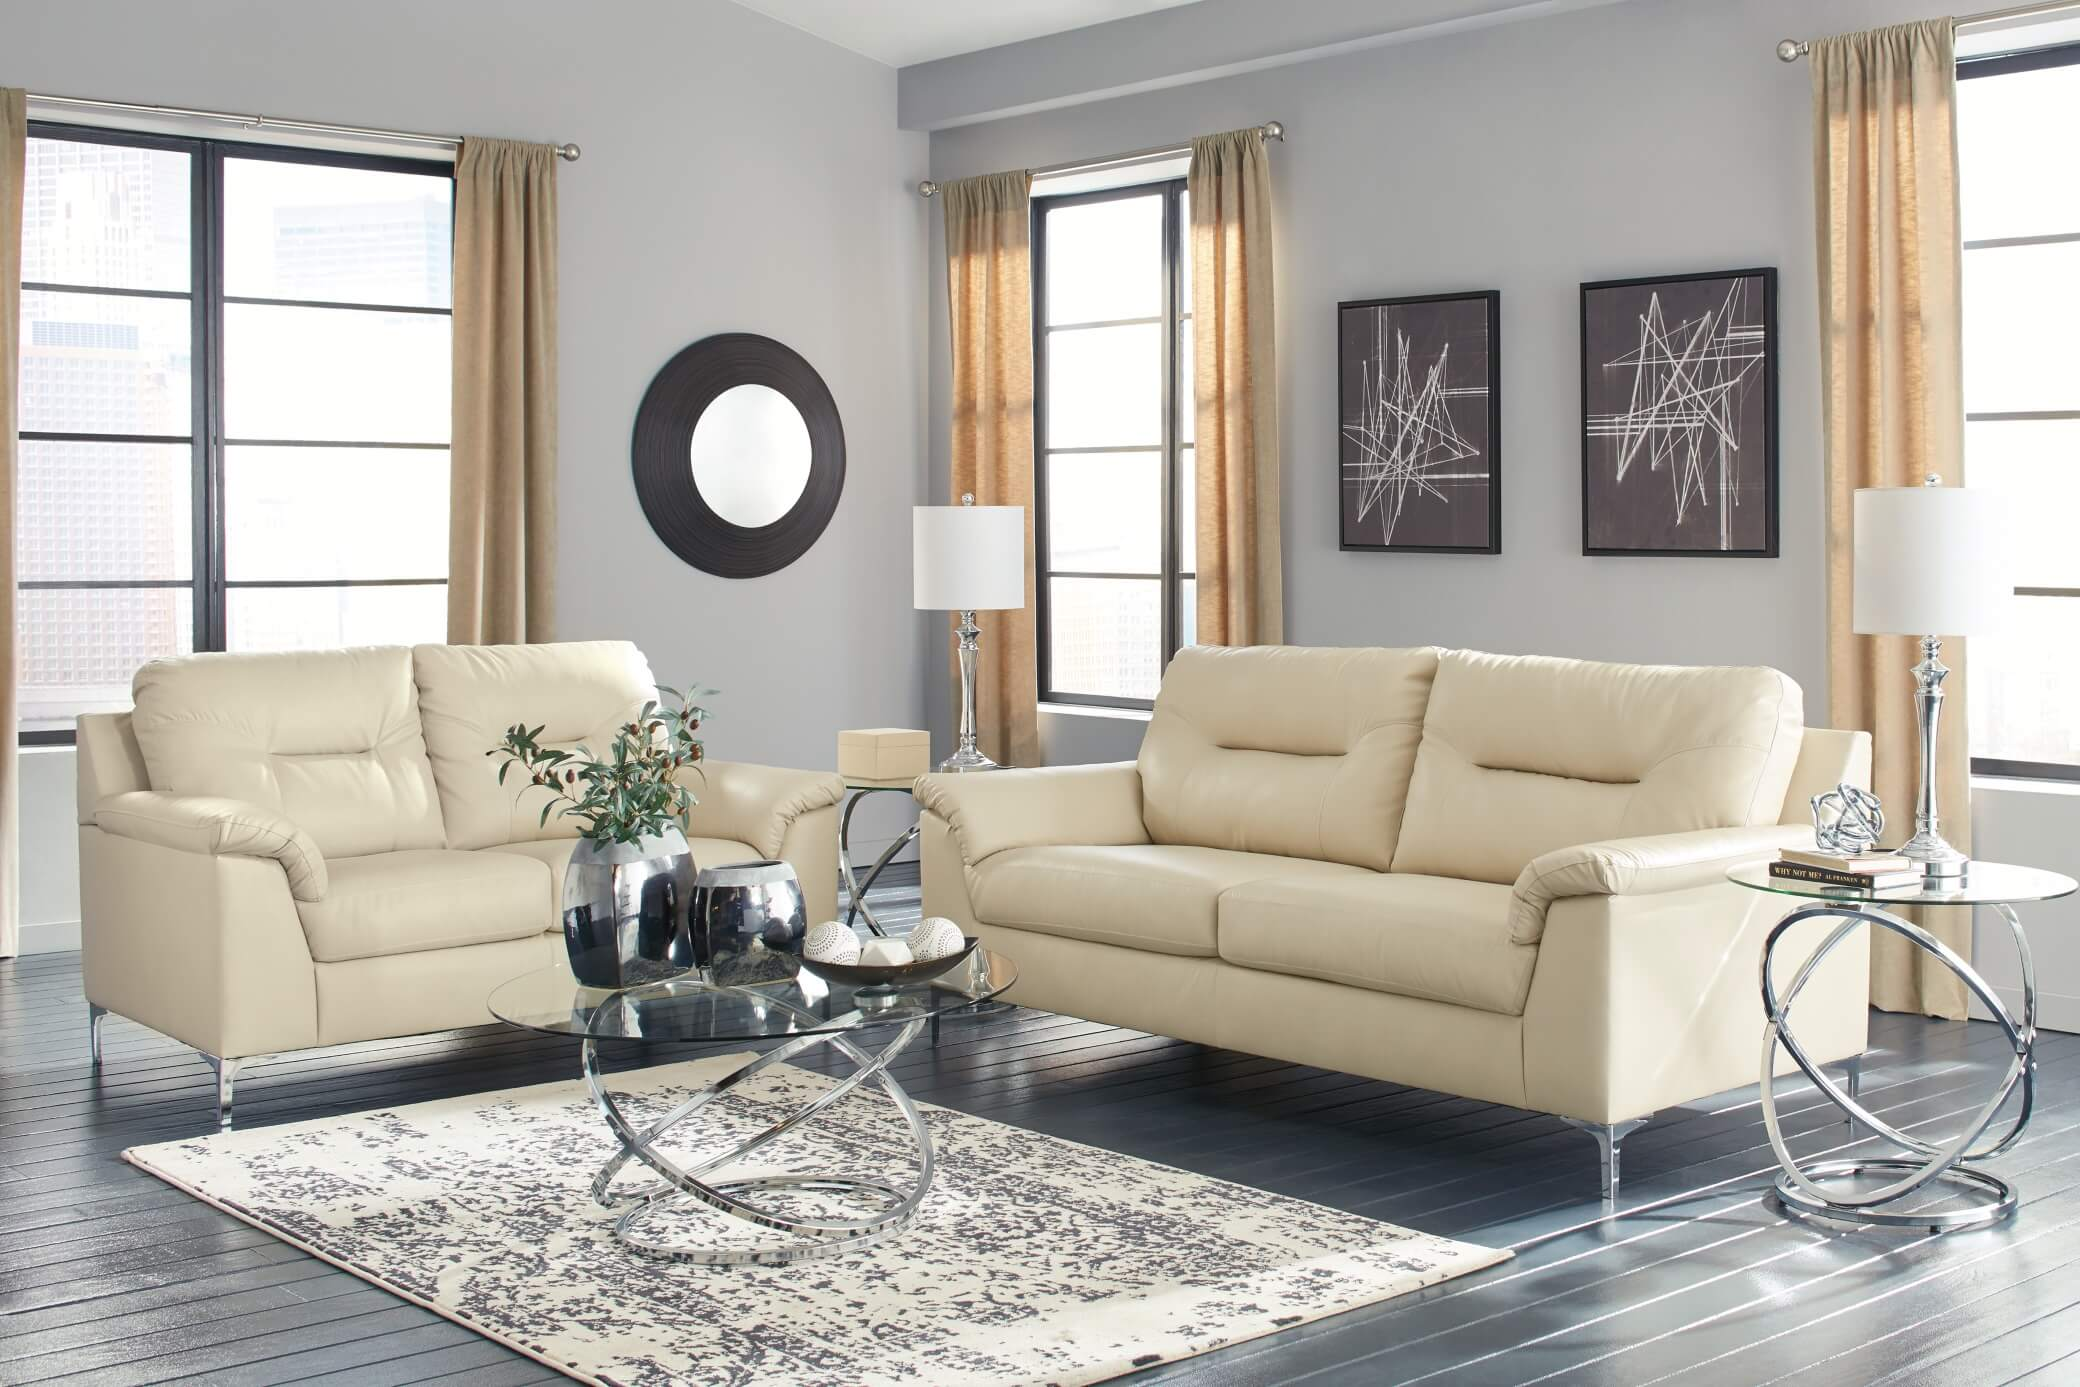 Tensas Ice Contemporary Living Room Set | Urban Furniture Outlet